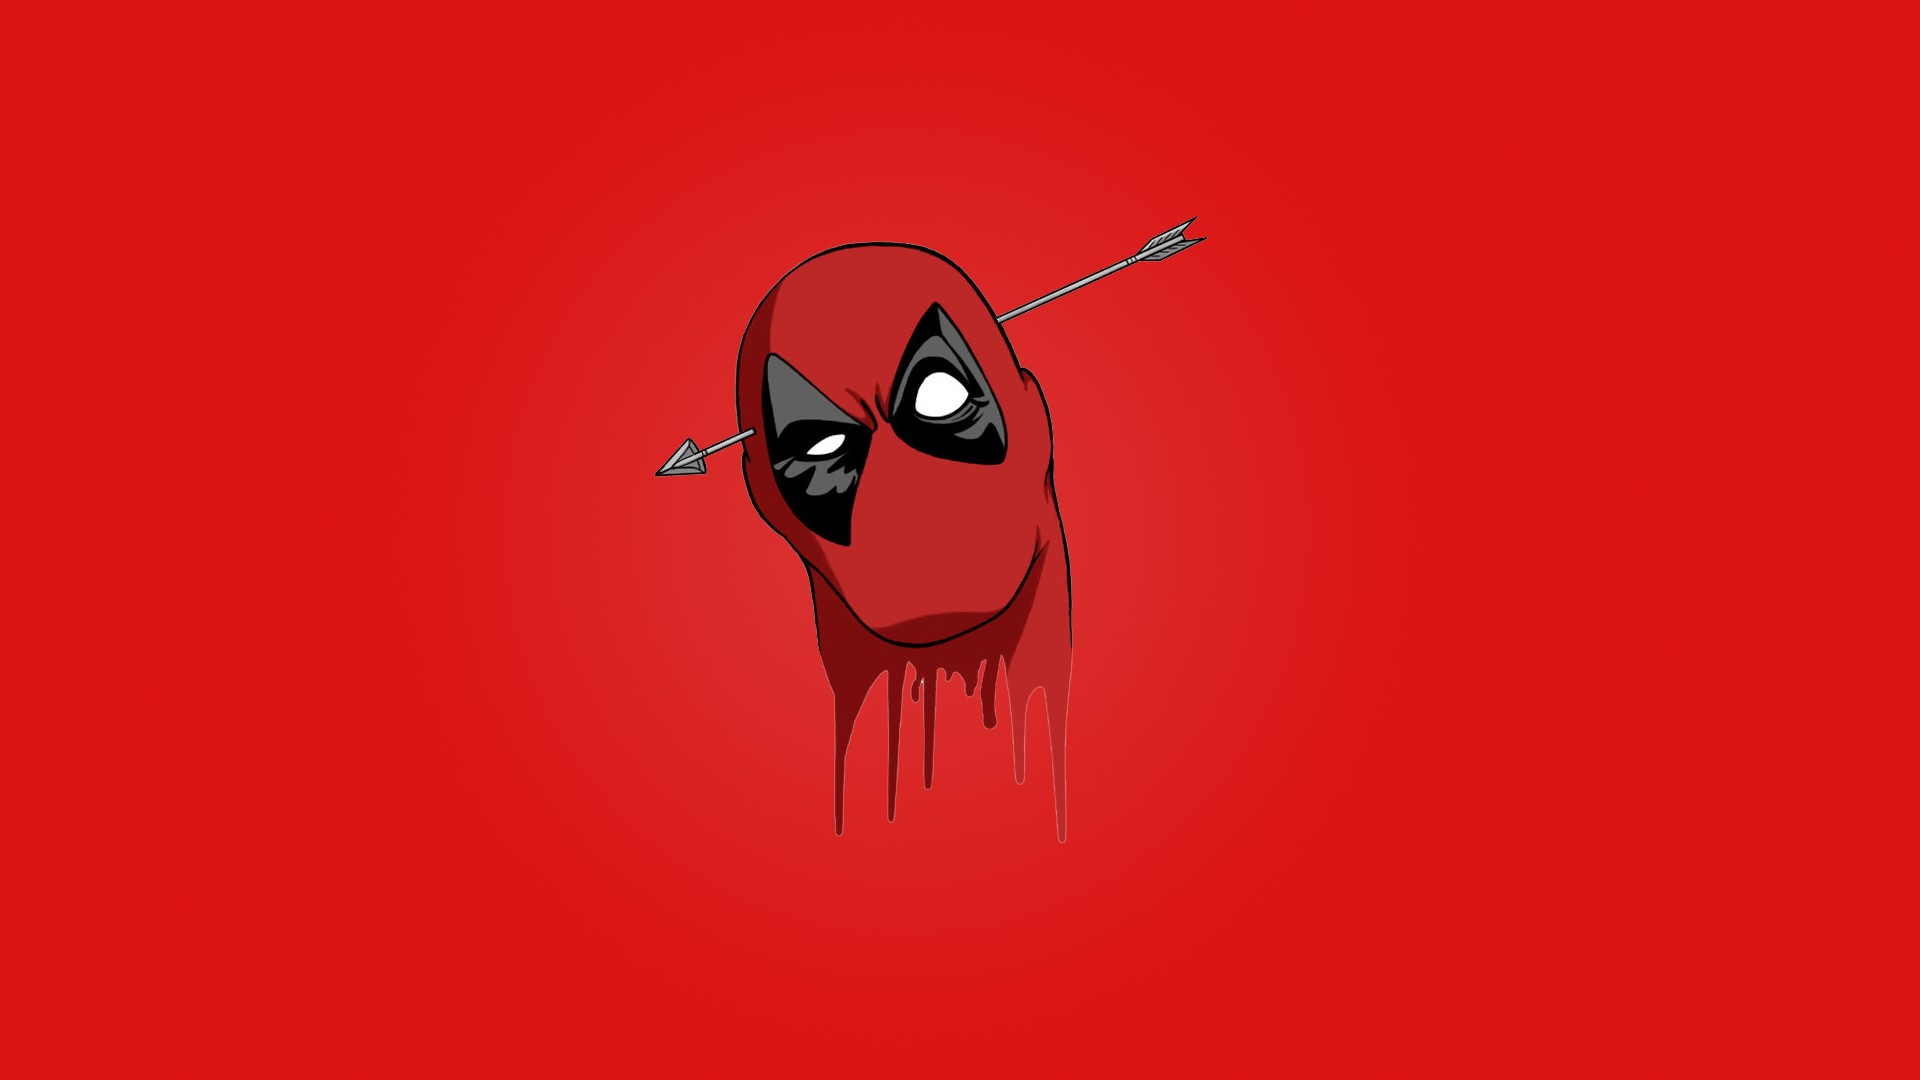 Deadpool wallpaper hd download free wallpapers for desktop 1920x1080 deadpool comic macbook wallpapers hd by qiana blare voltagebd Image collections